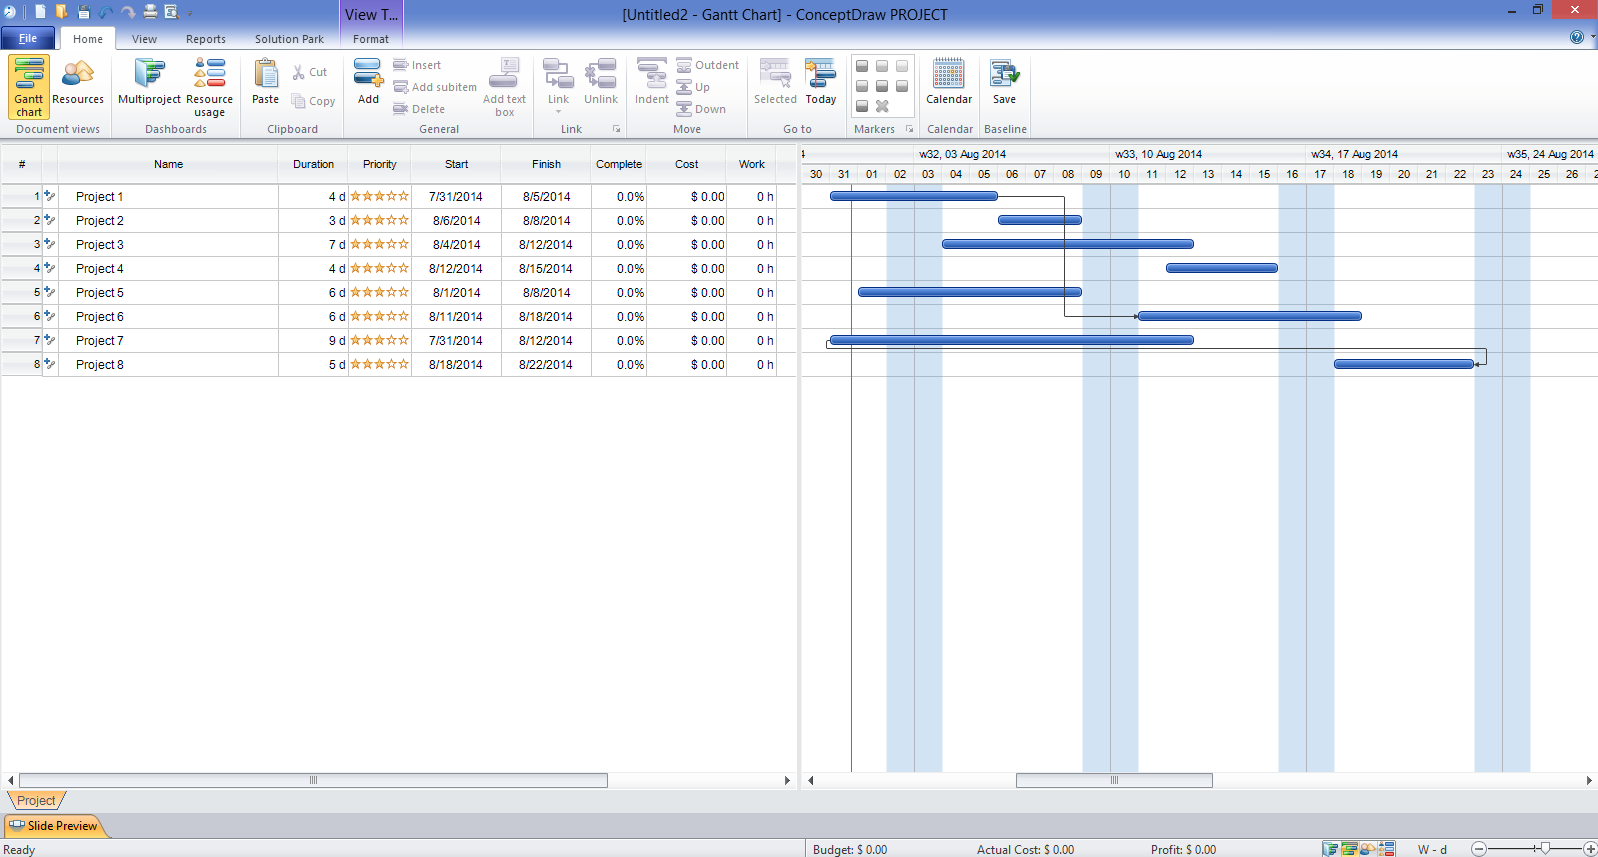 ConceptDraw PROJECT Software